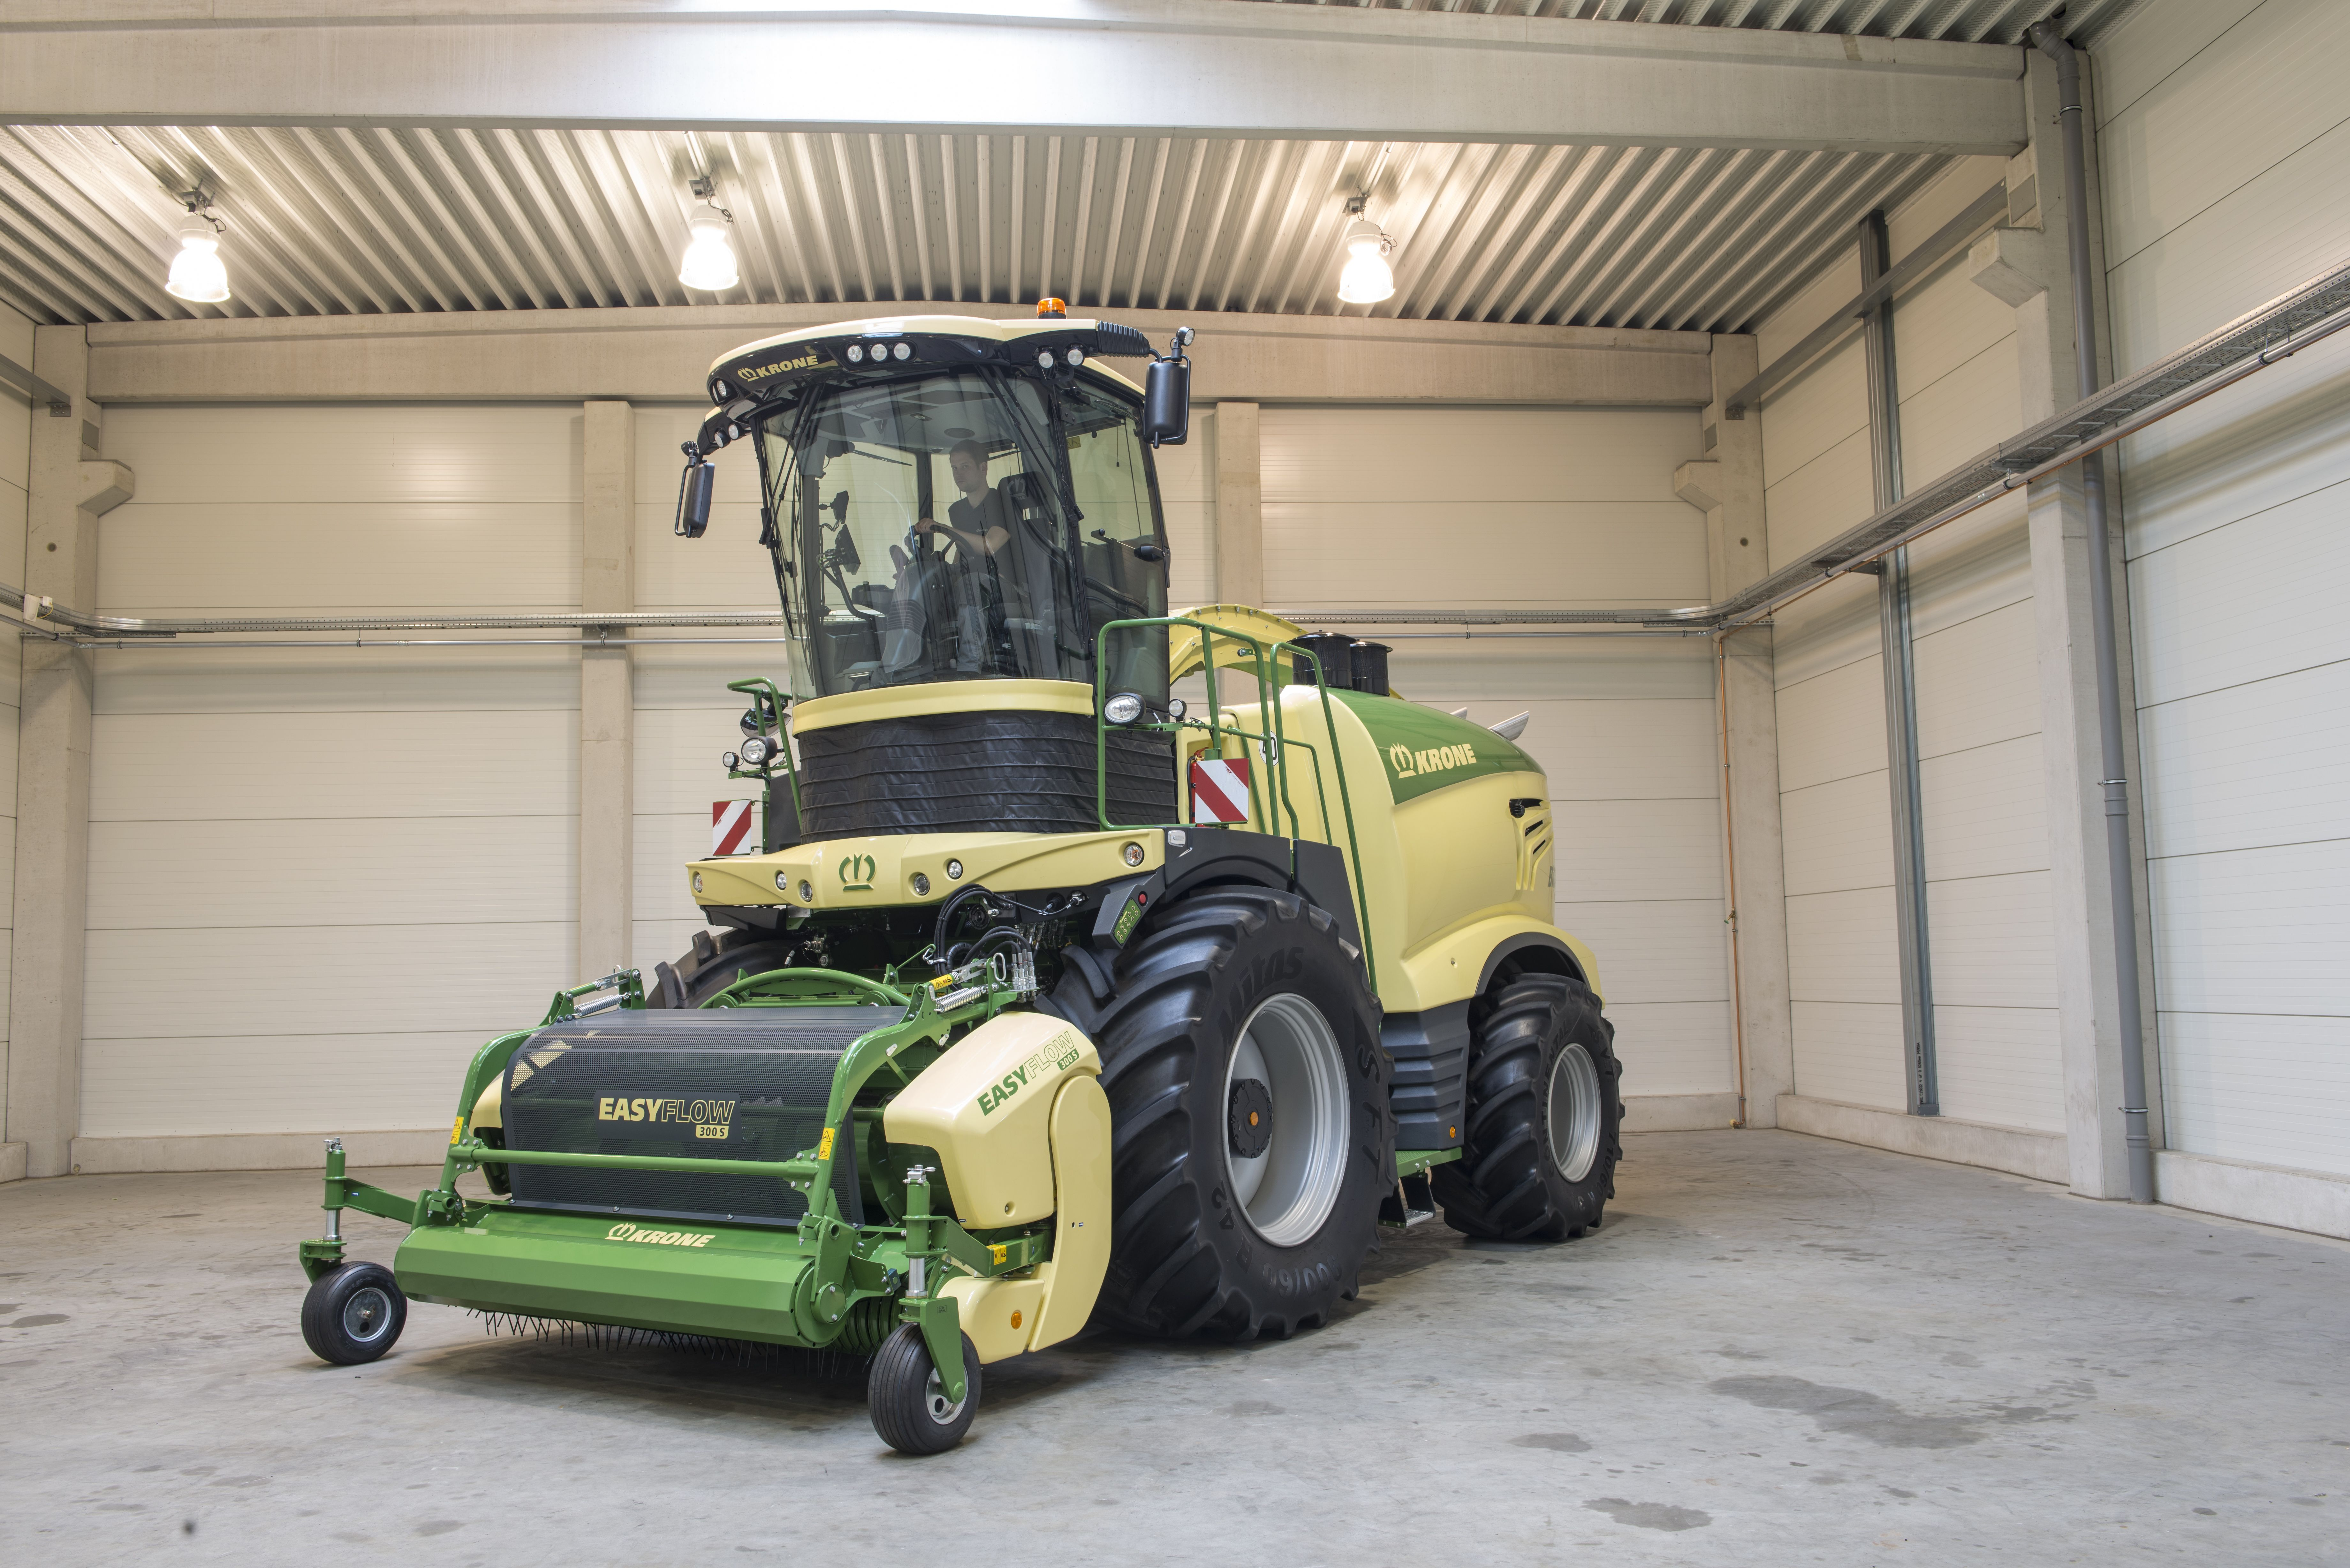 Agritechnica 2019 Innovation Award 2017 John Deere Mower Belt Diagram Hd Walls Find Wallpapers As Modern And High Yielding Maize Varieties Reach Growth Heights Of 40 M More Forager Operators Feel Like Driving Their Machines Up Against A Wall